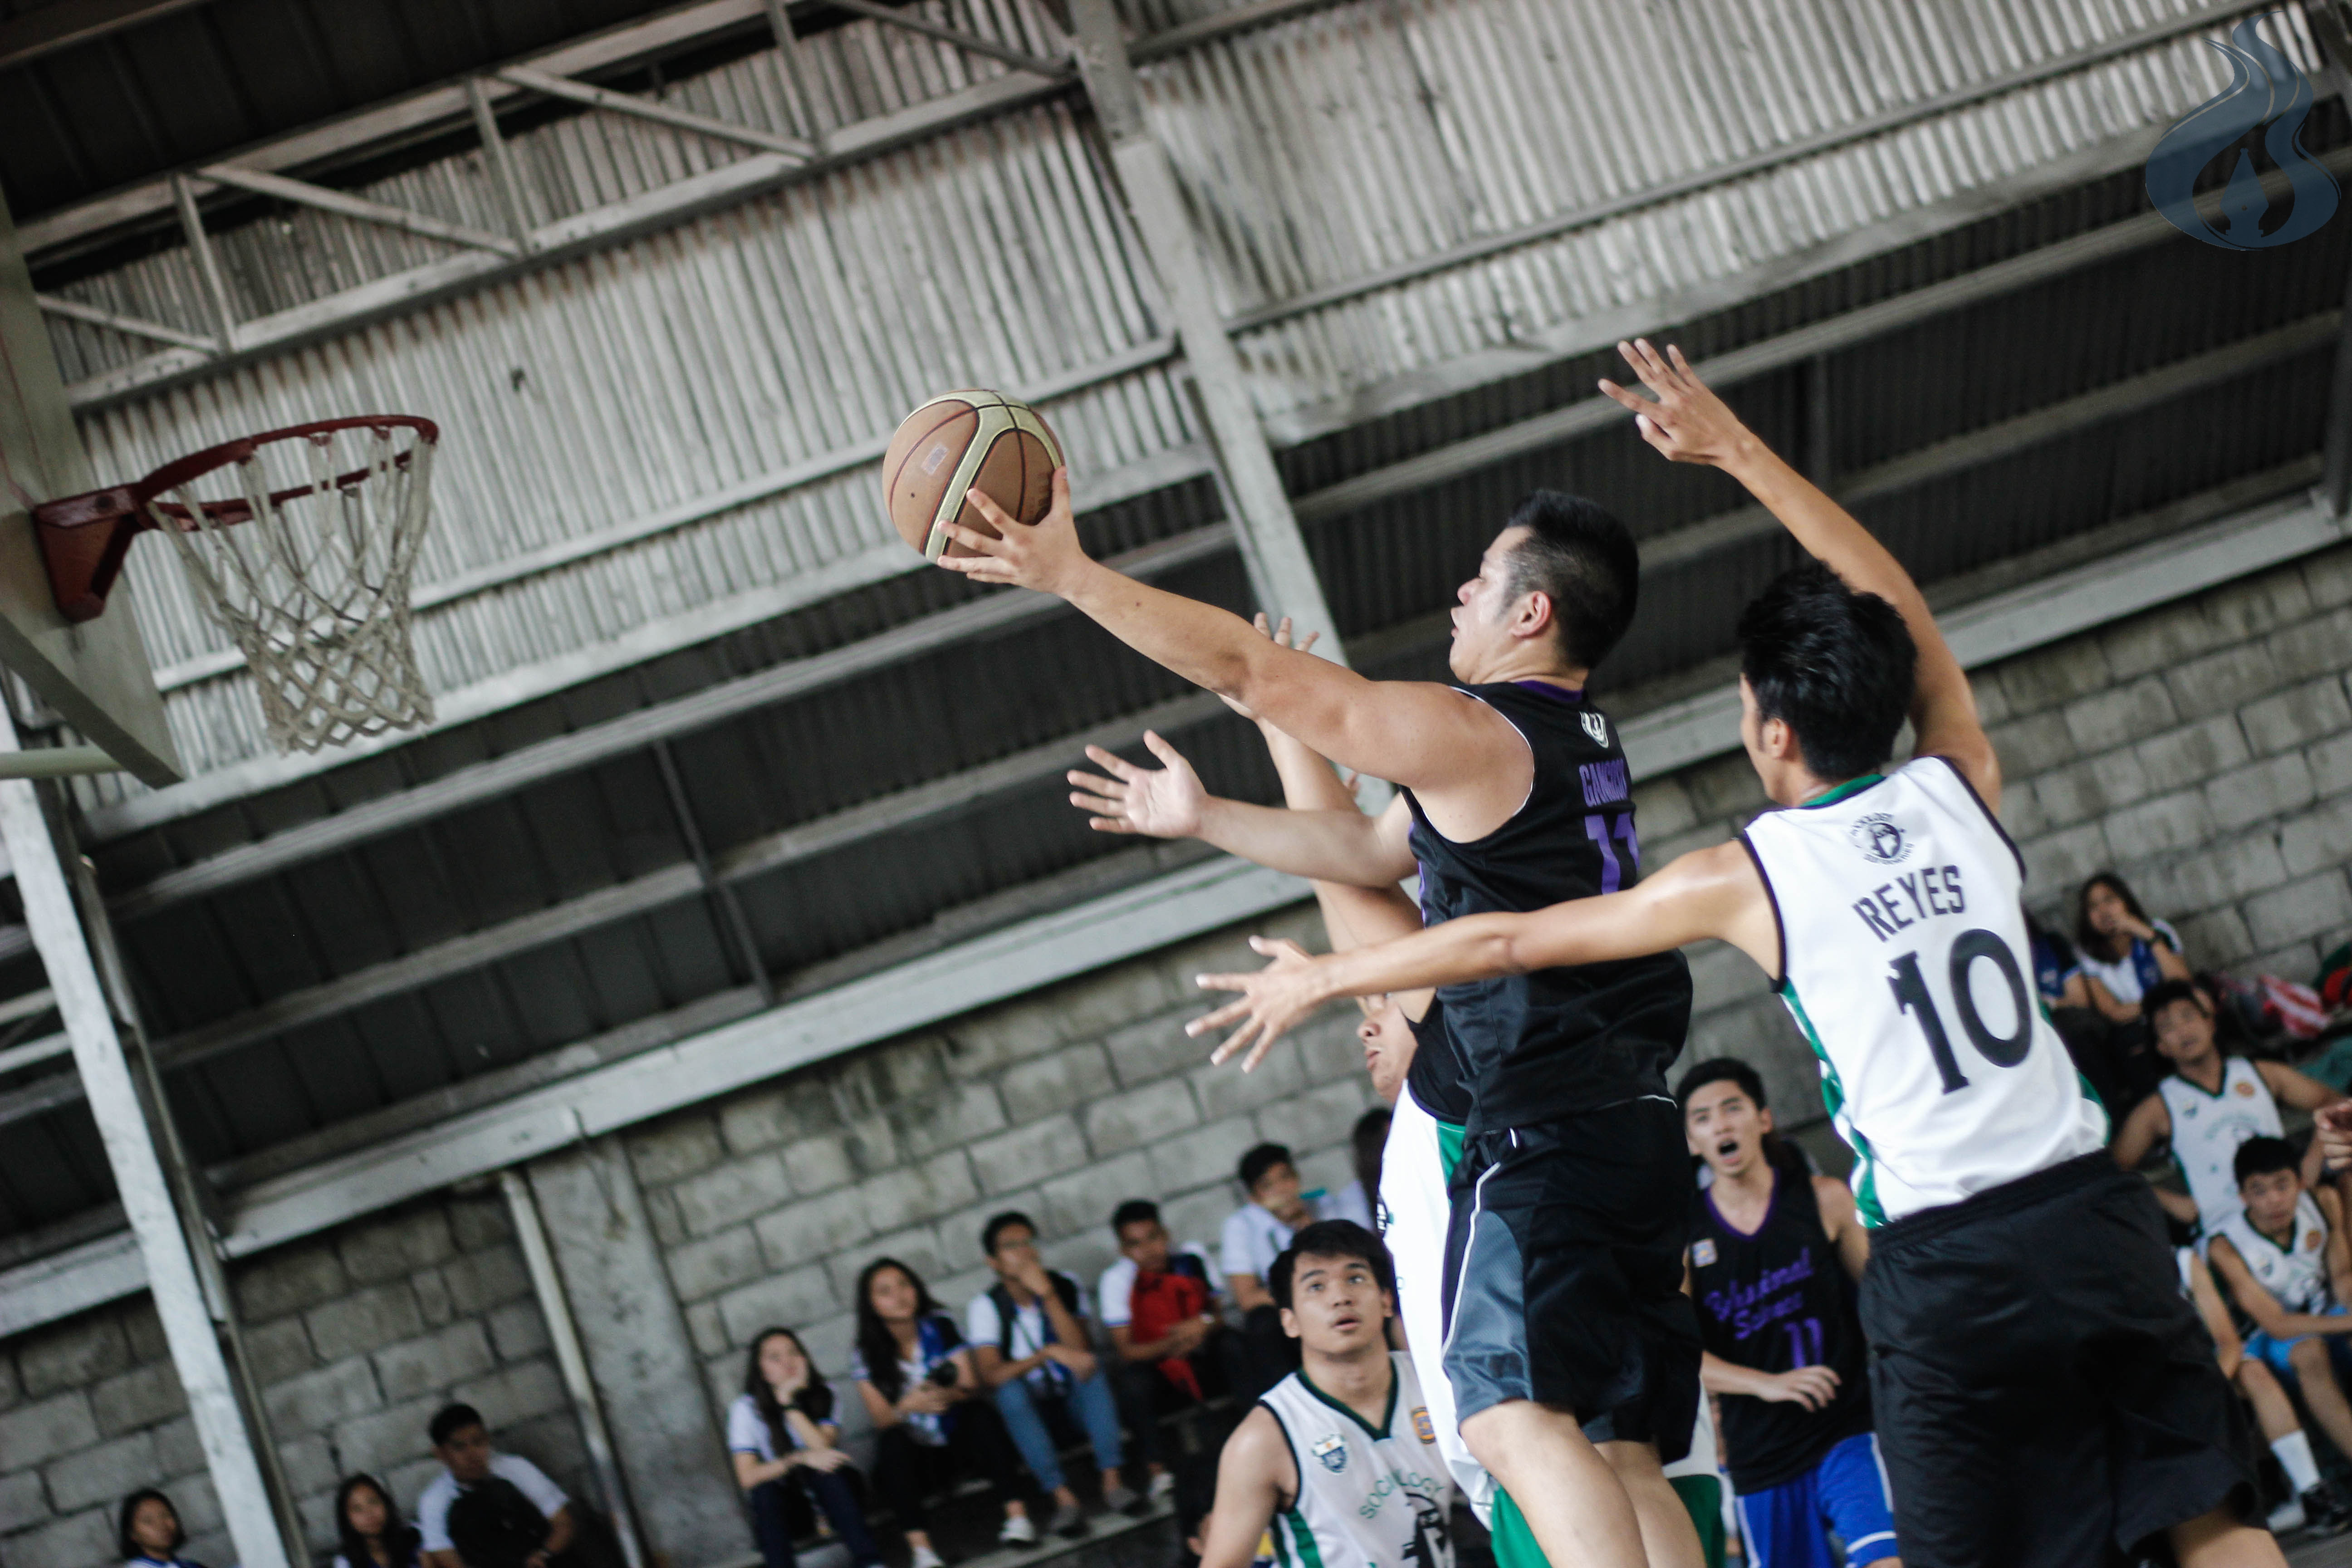 HST, LegMa, ASN, CA, SCL open basketball league on a high note